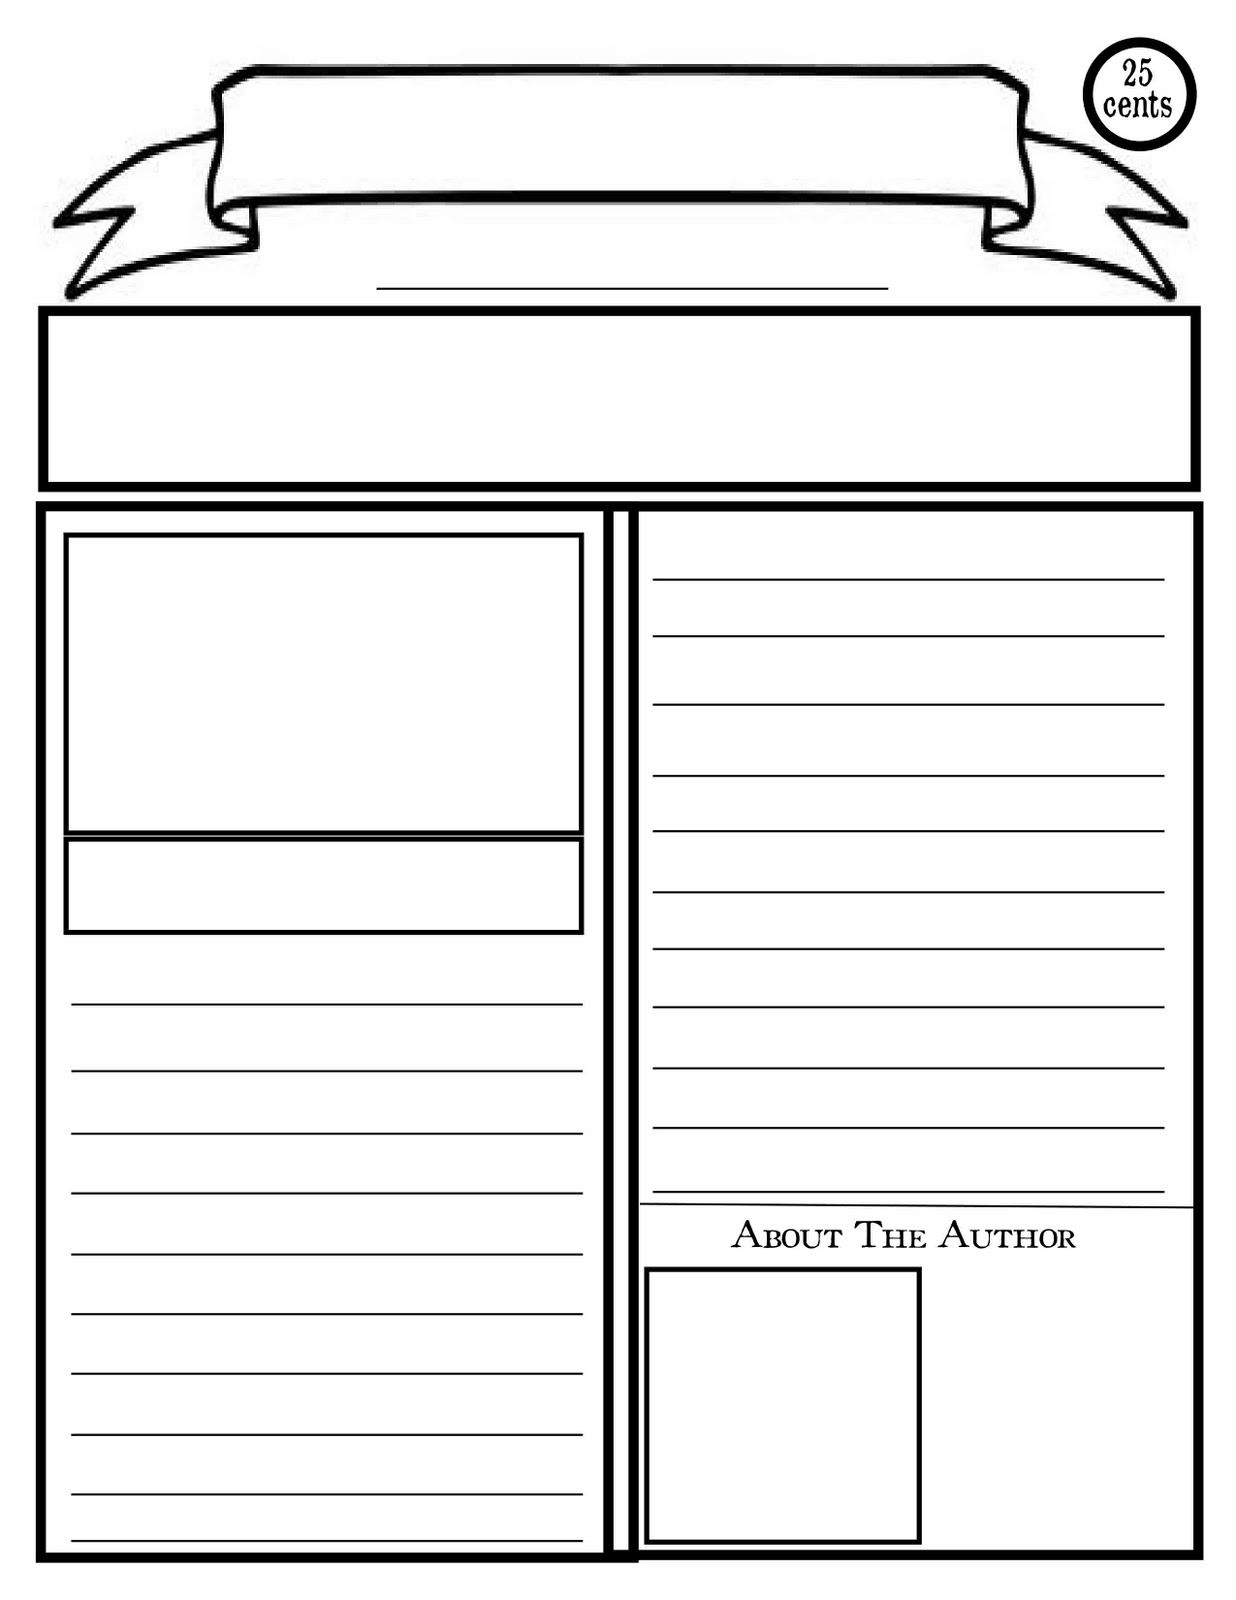 blank newspaper template for kids printable | Pinterest